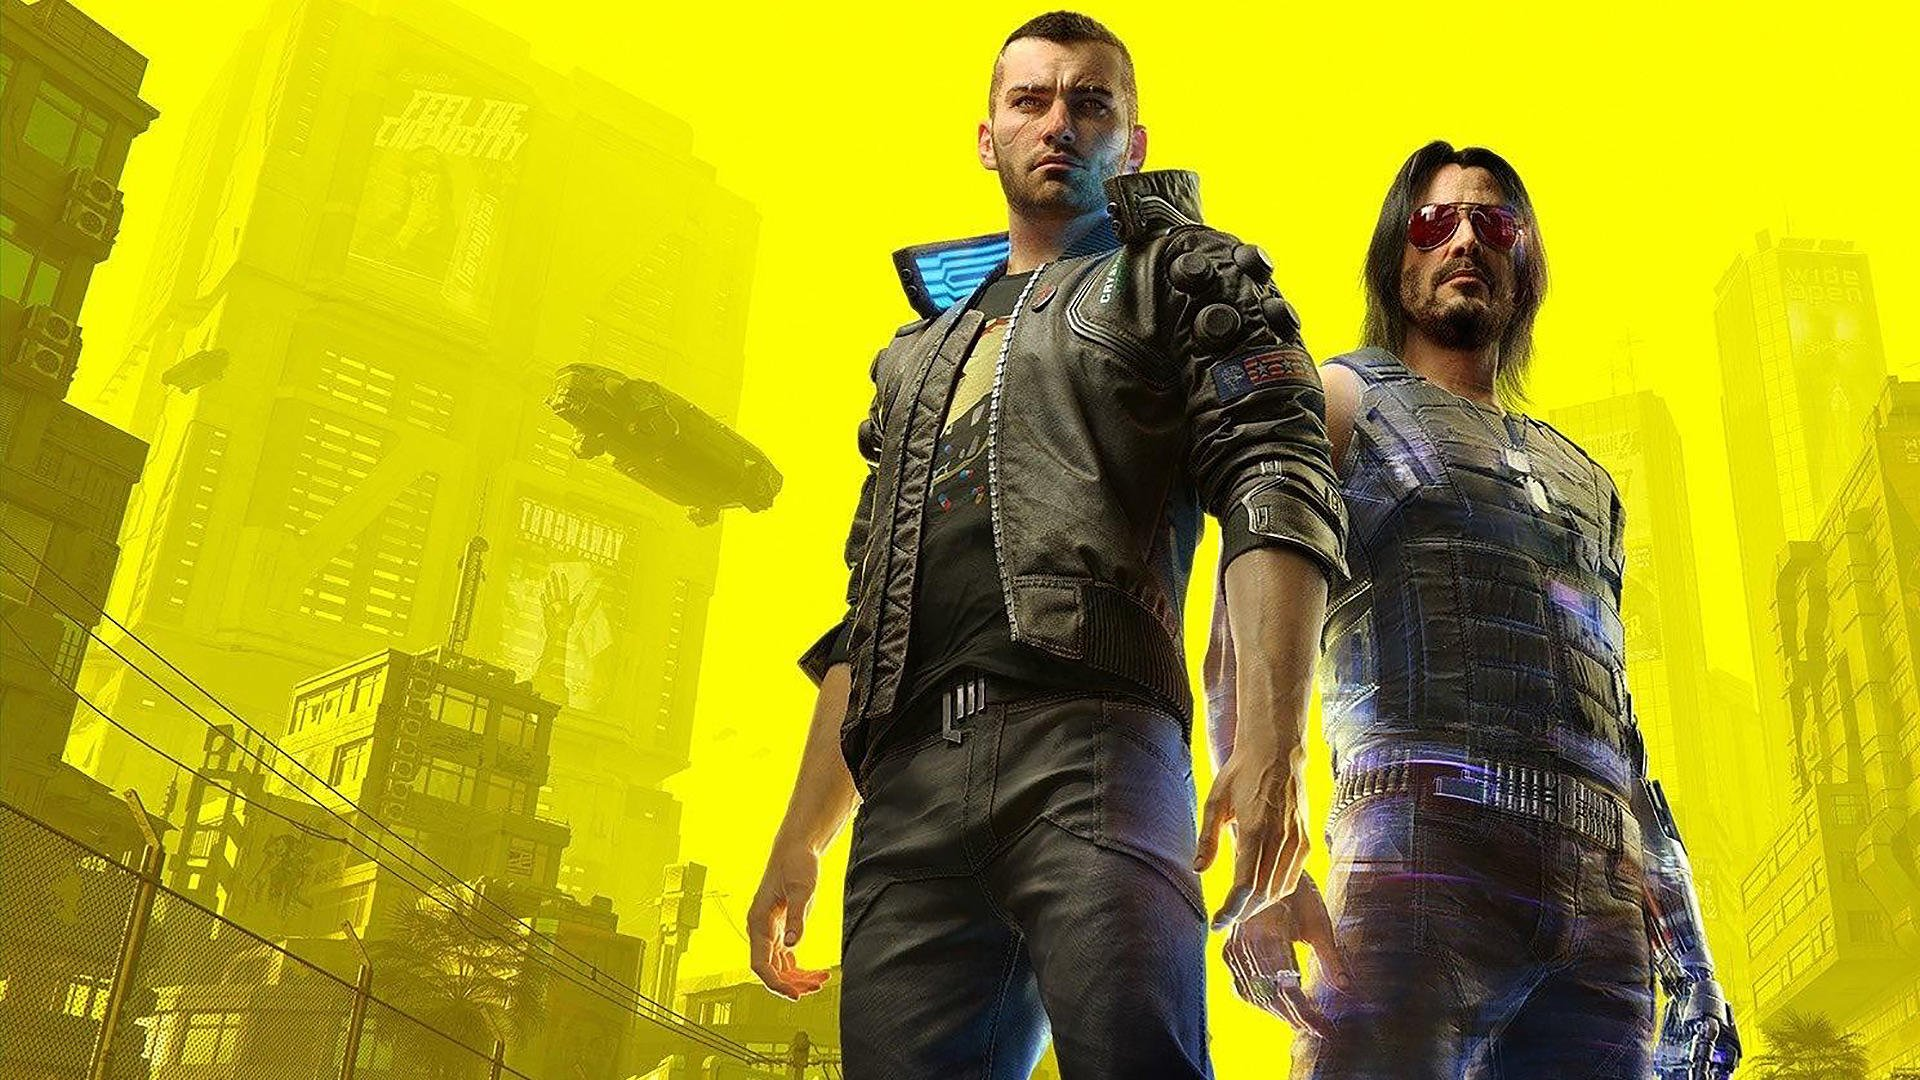 Cyberpunk 2077 Releases On December 9 In Some Time Zones As CDPR Reveal Global Release